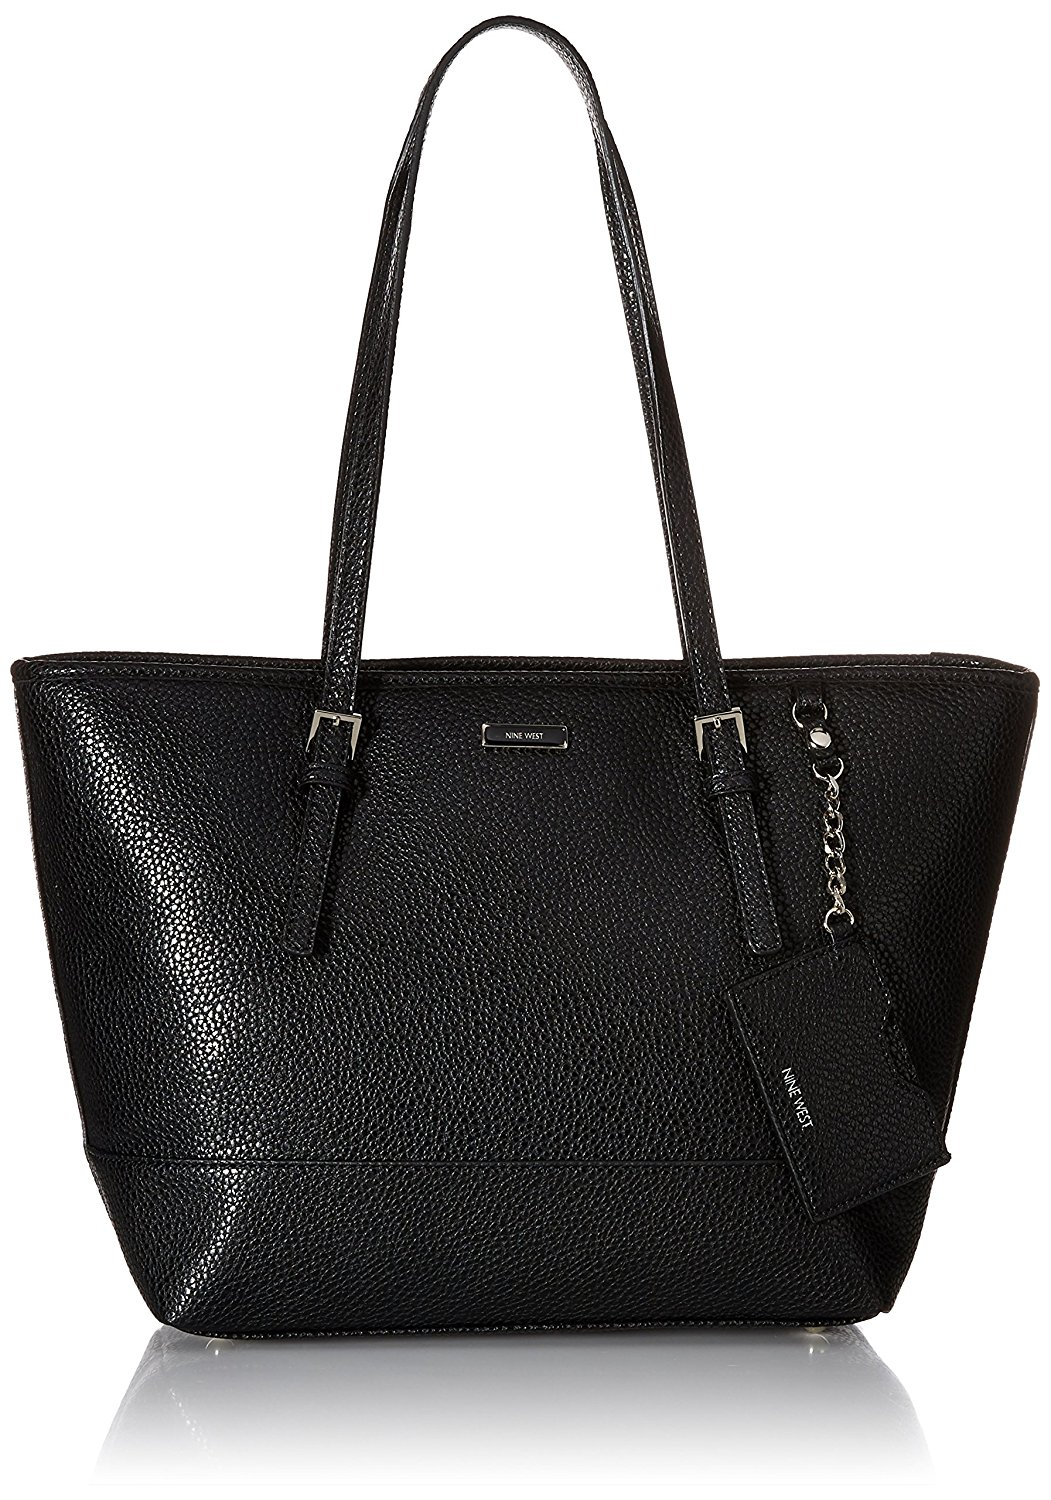 Get Quotations Nine West Ava Tote Bag